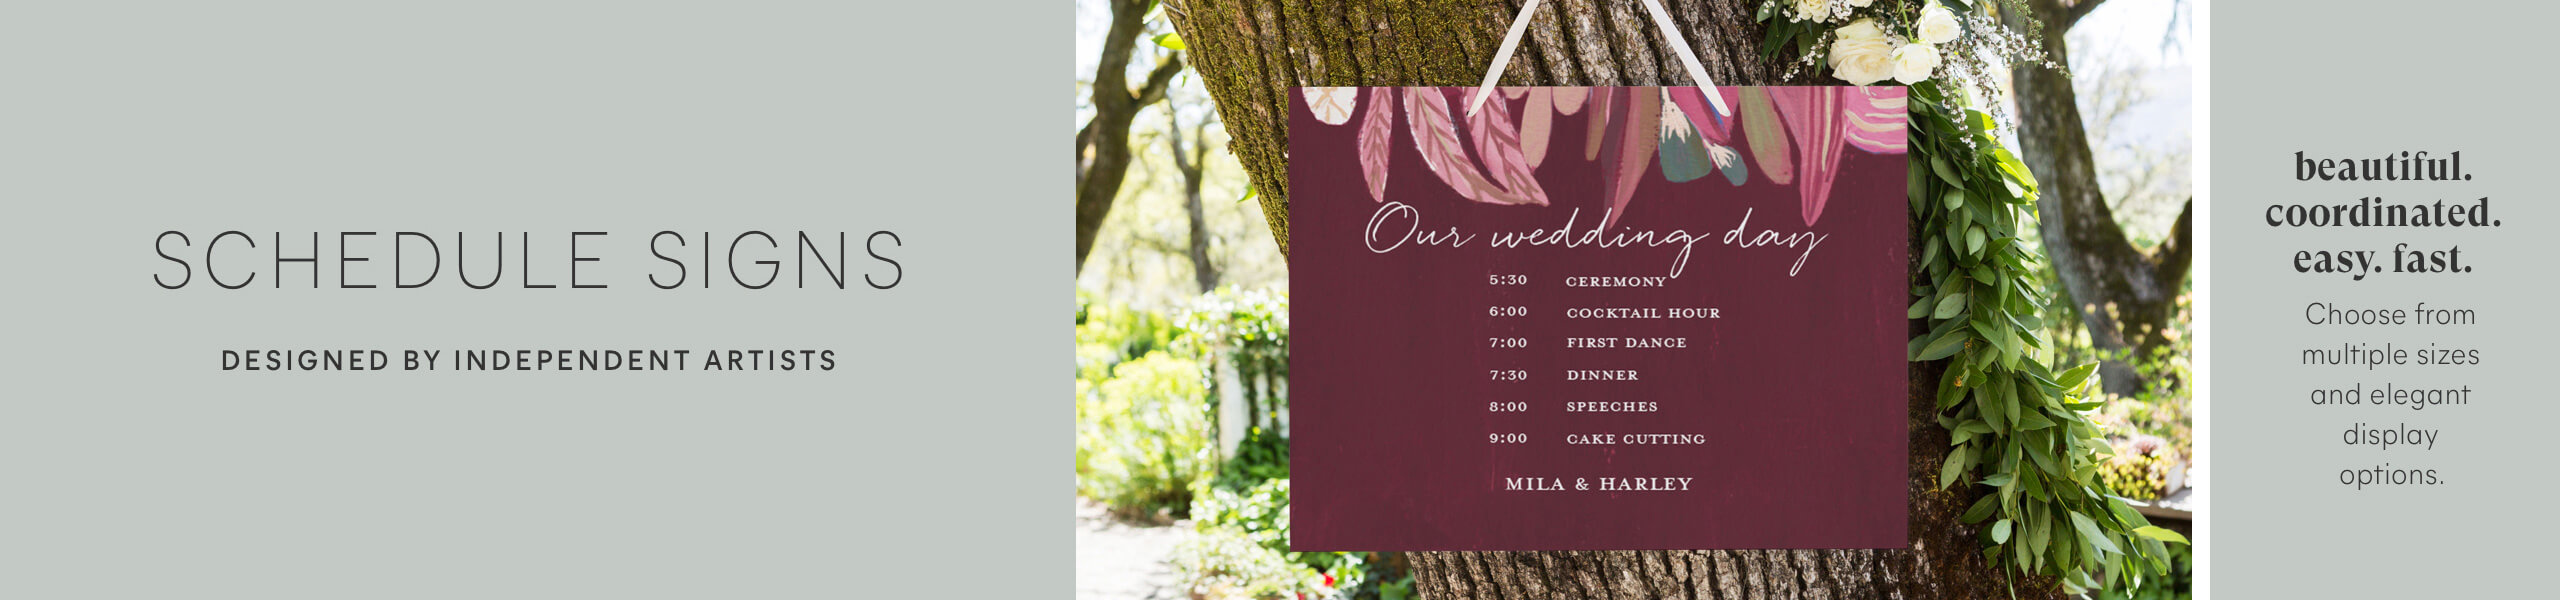 Wedding Schedule Signs